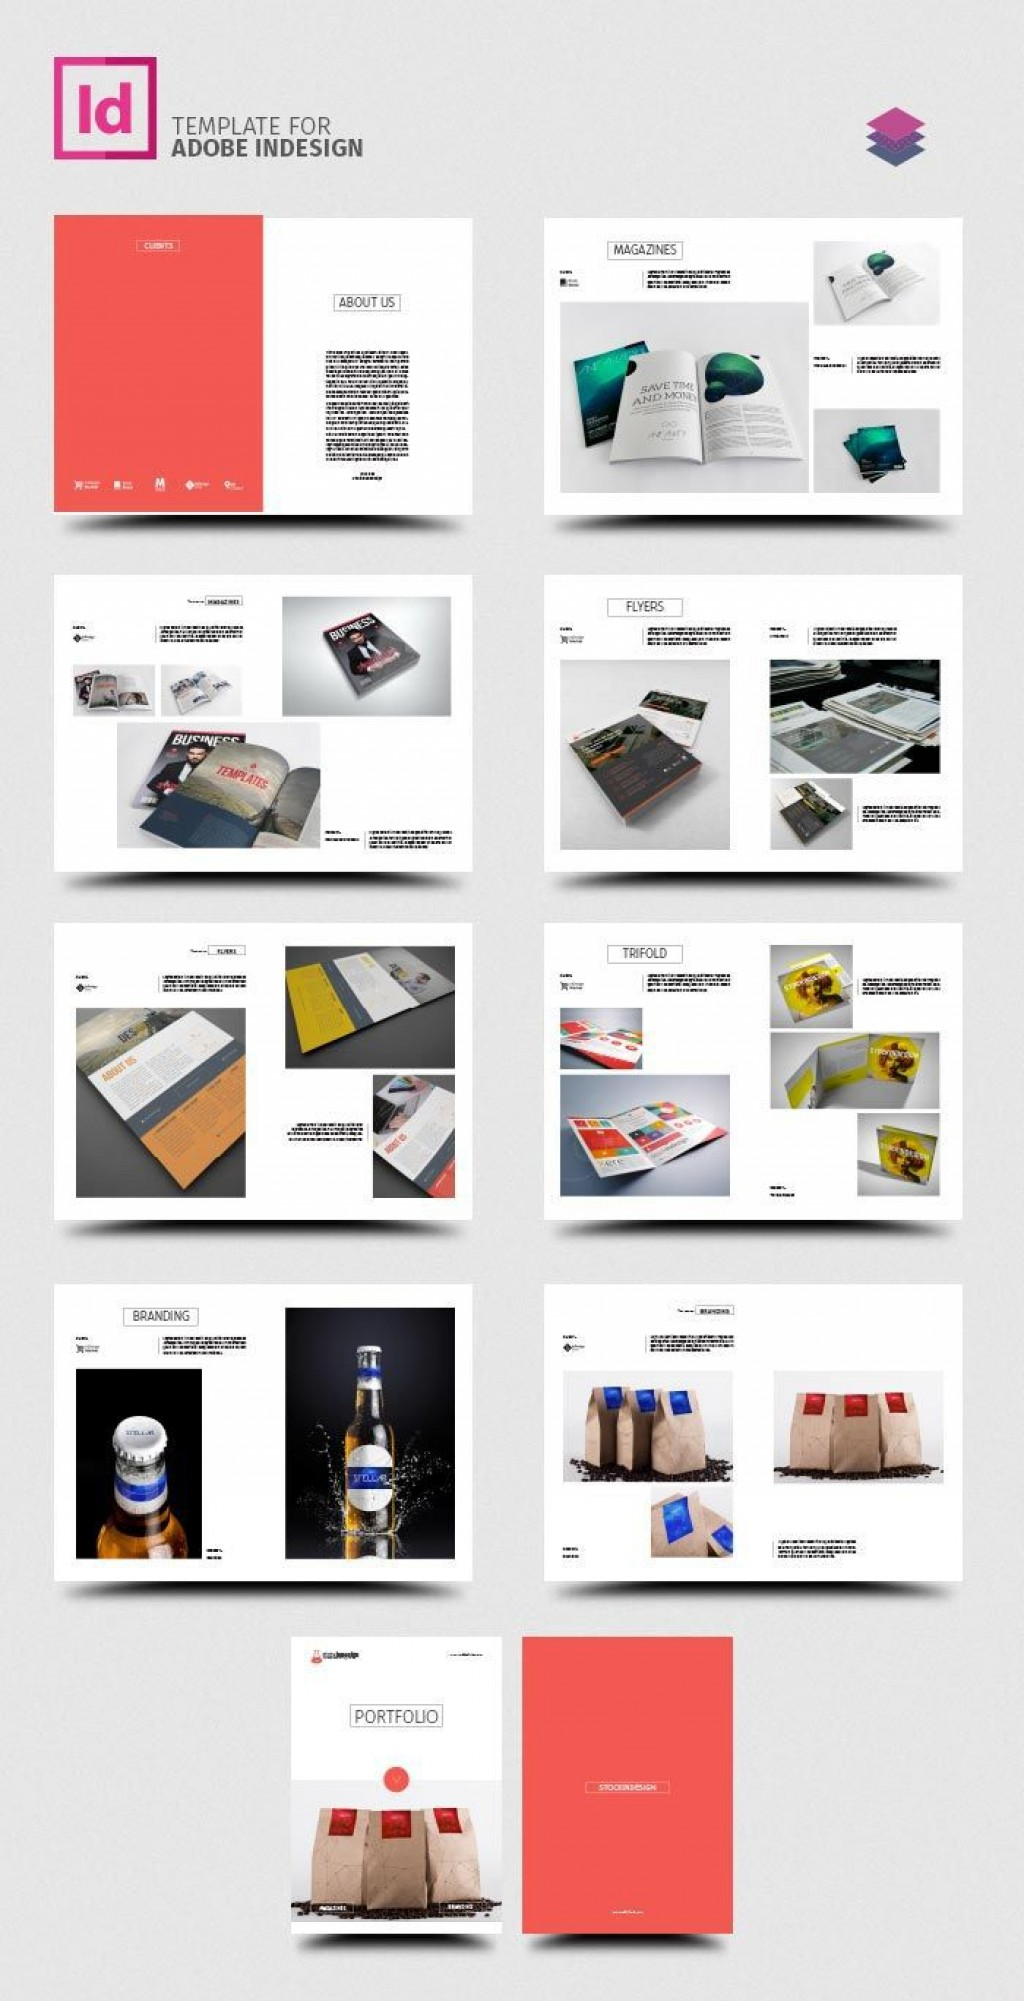 002 Fearsome Adobe Indesign Brochure Template Free Download High Def Large